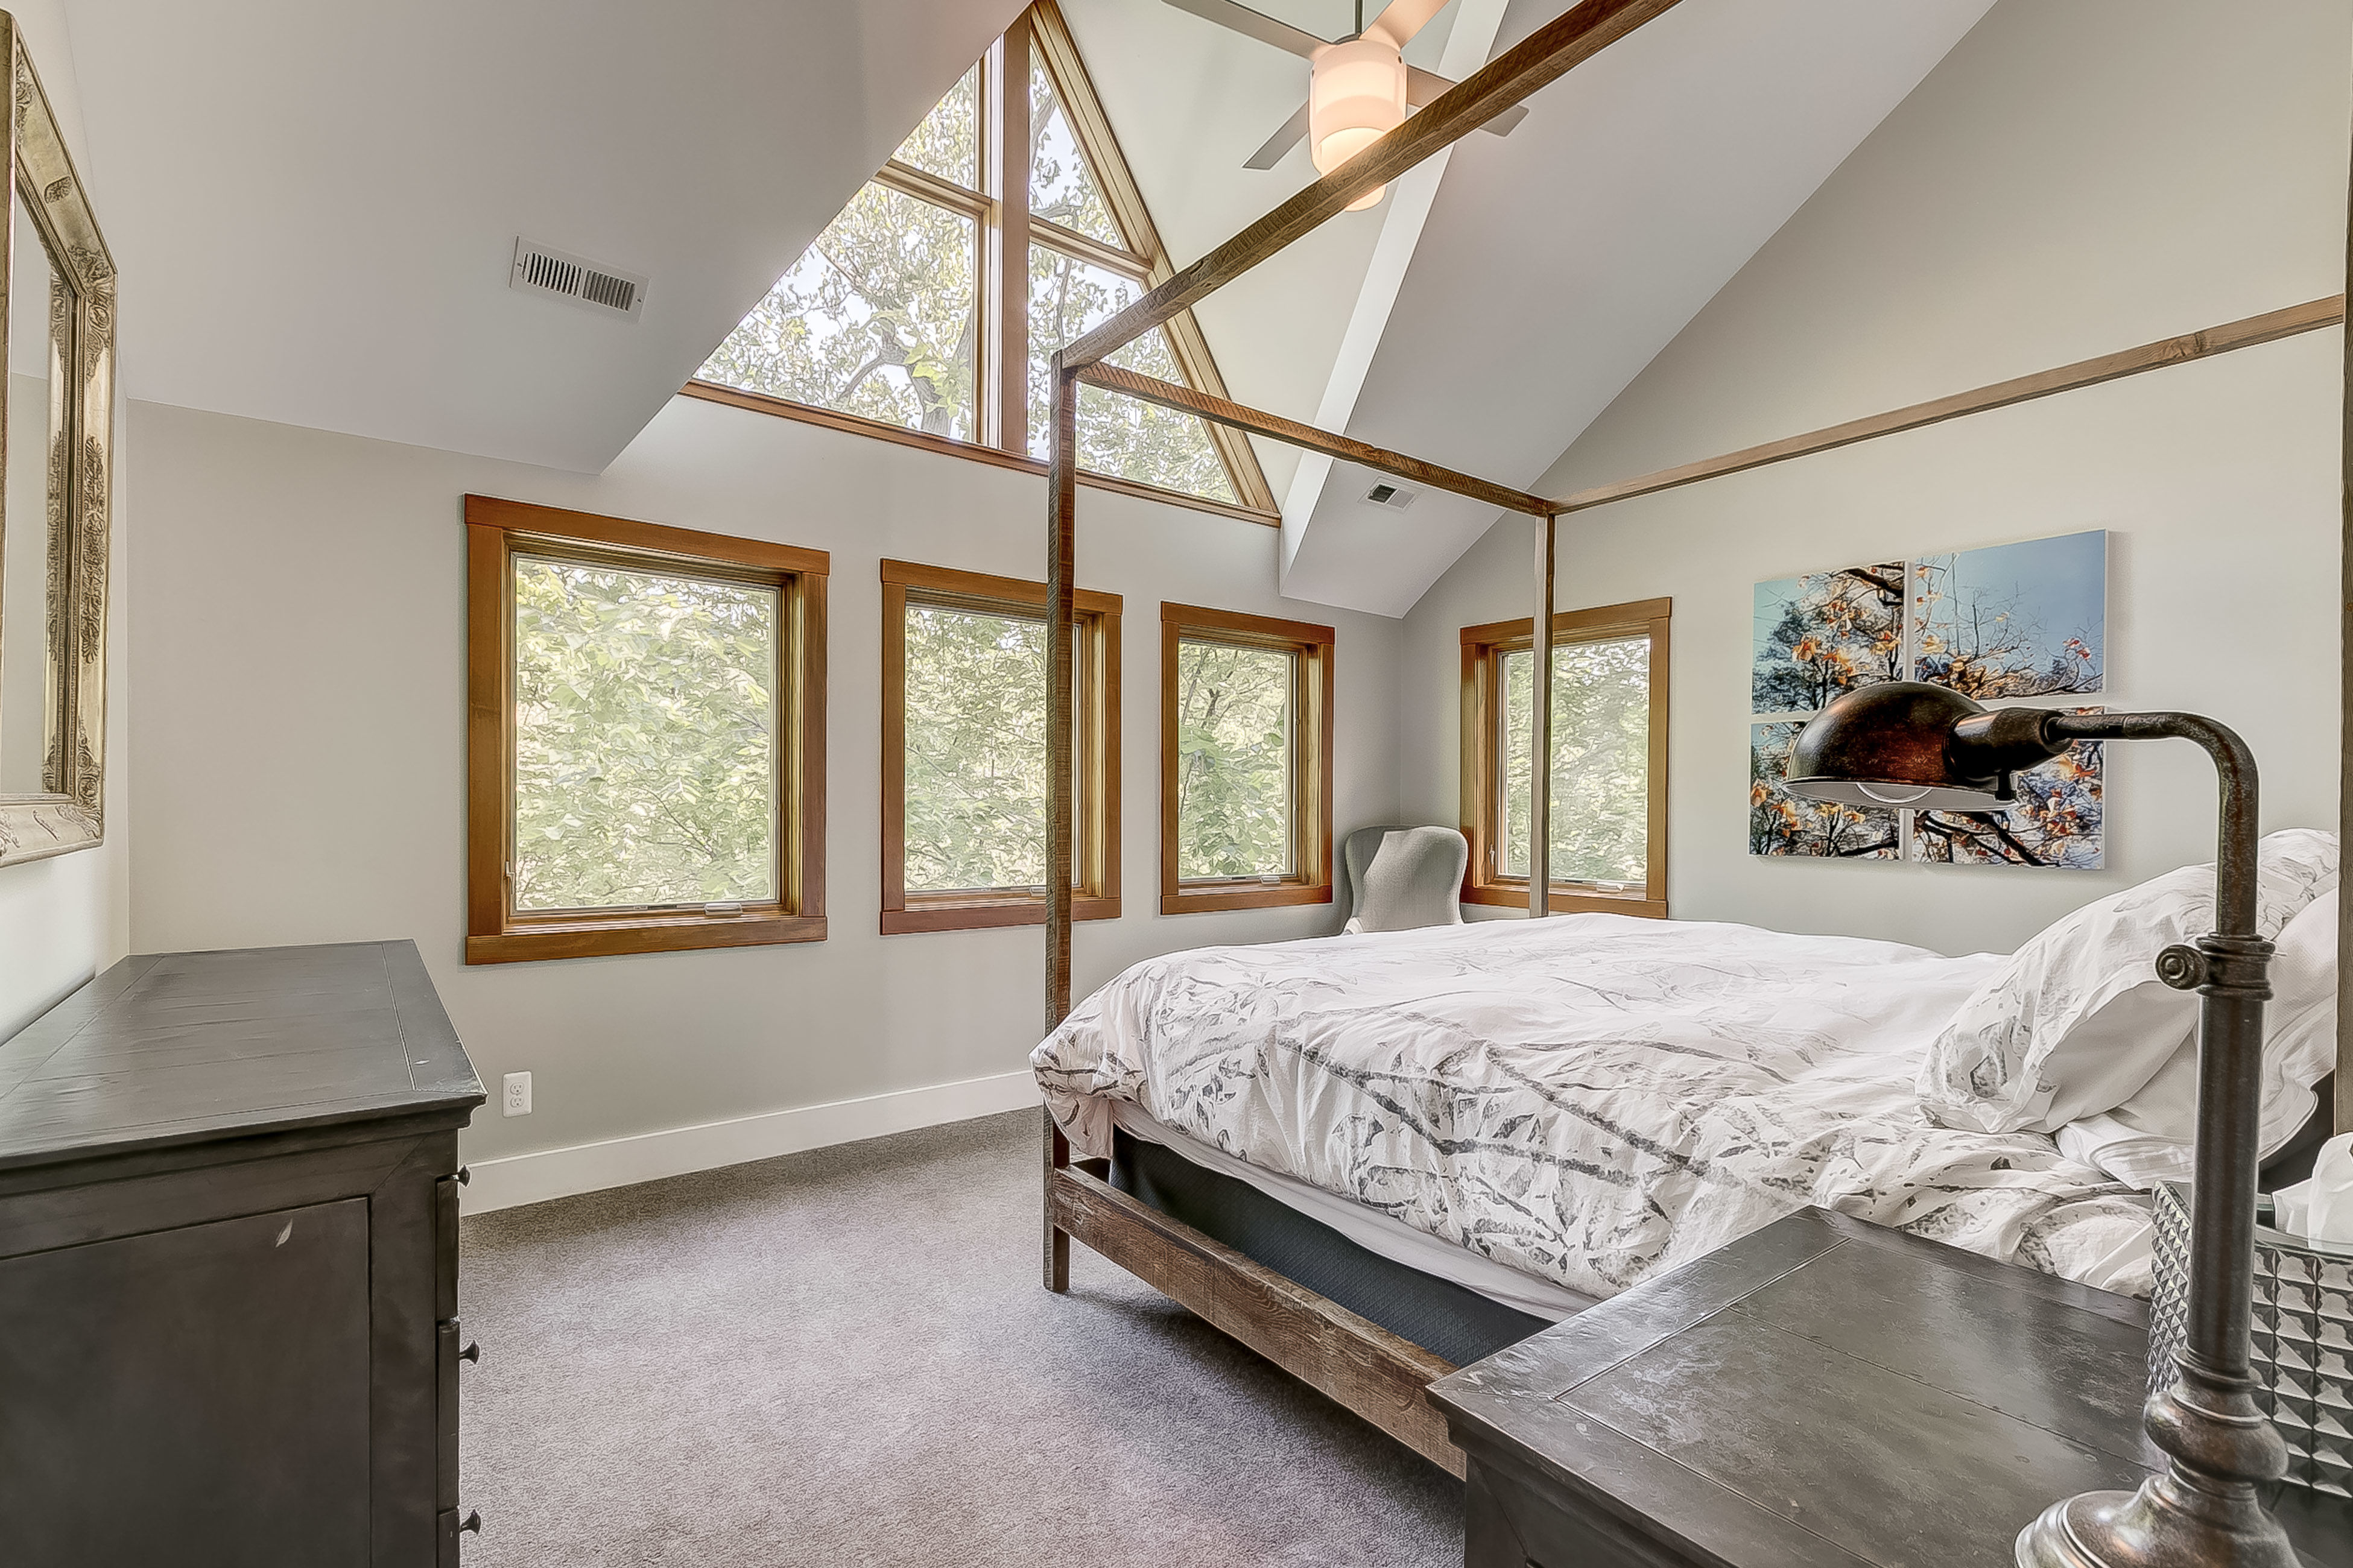 hang a left + be in awe of the lofted ceiling + wall of light in the main bedroom